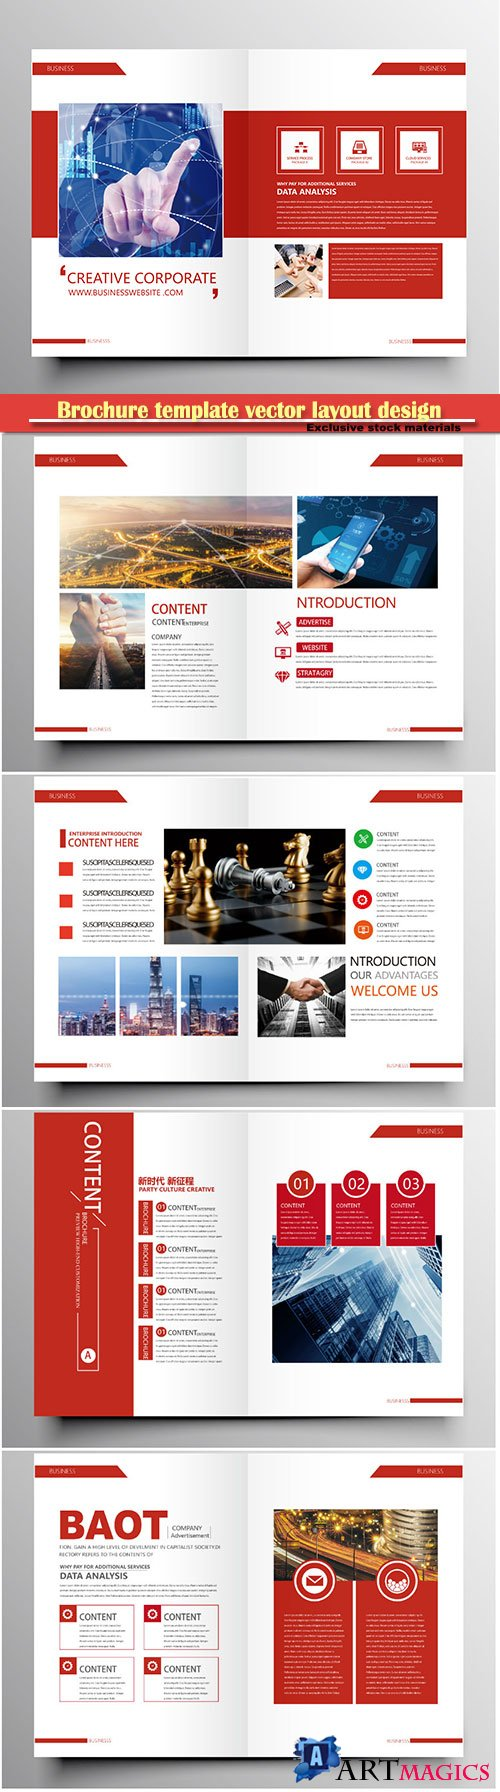 Brochure template vector layout design, corporate business annual report, magazine, flyer mockup # 179